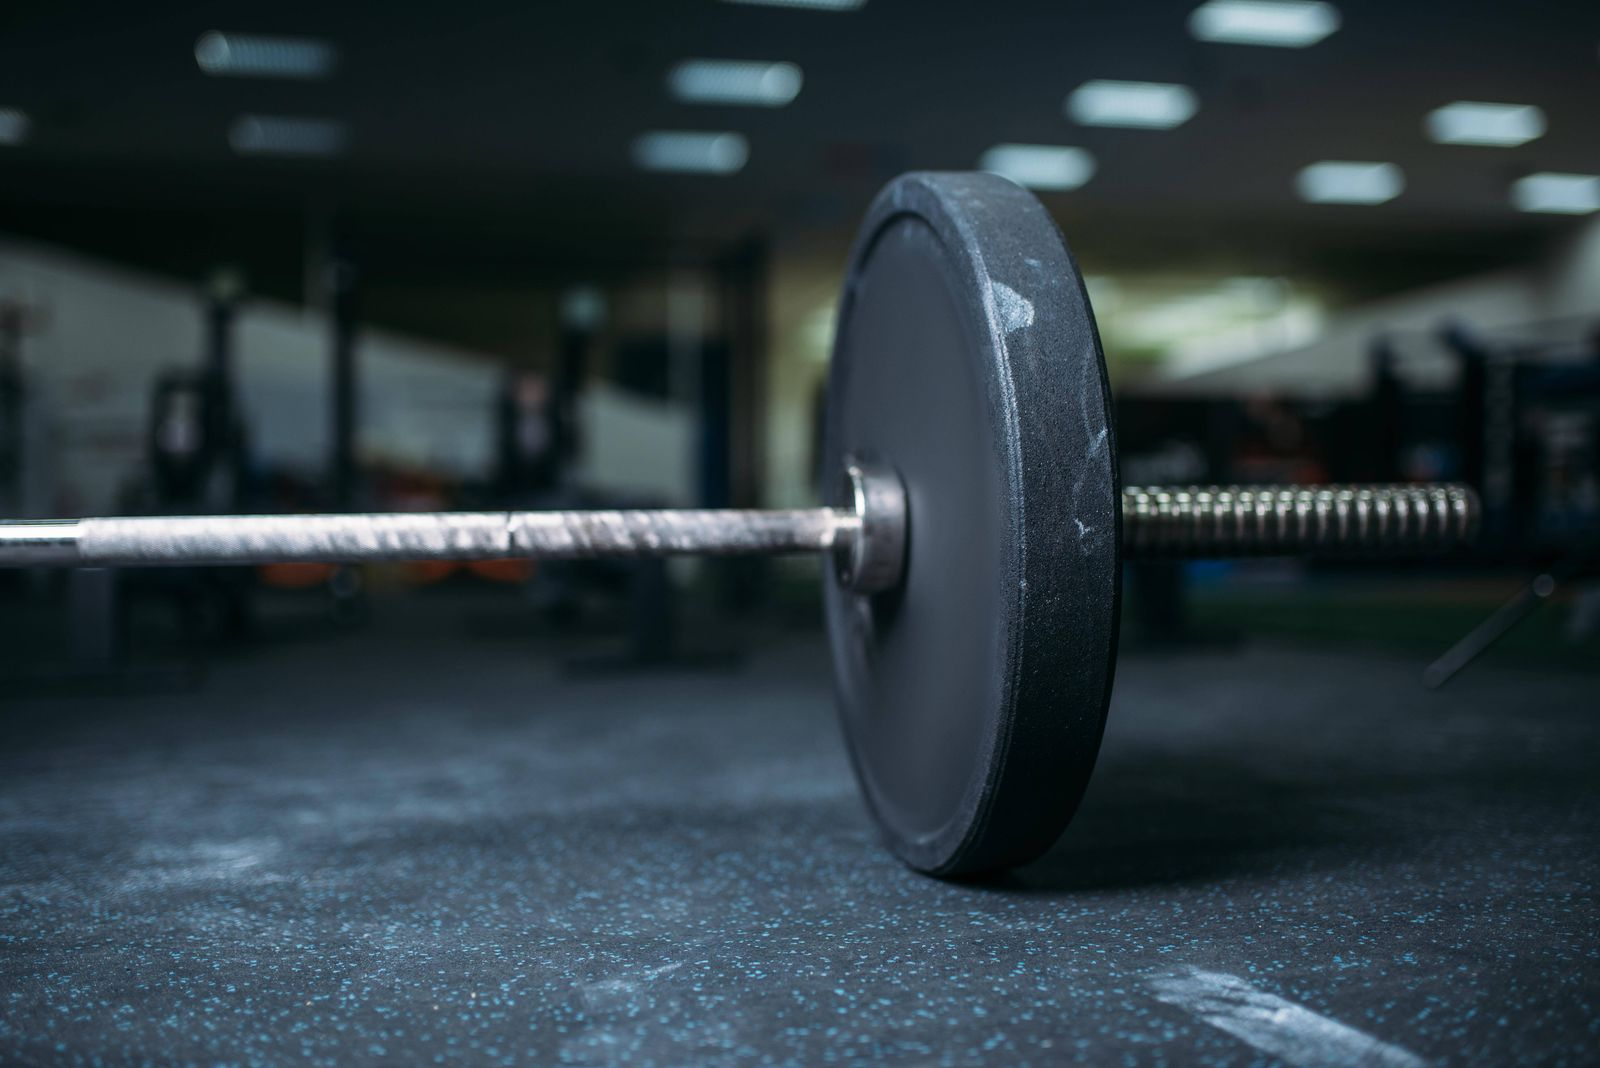 Barbell on the floor in gym closeup view, nobody Copyright: xNomadSoulx Panthermedia28068909